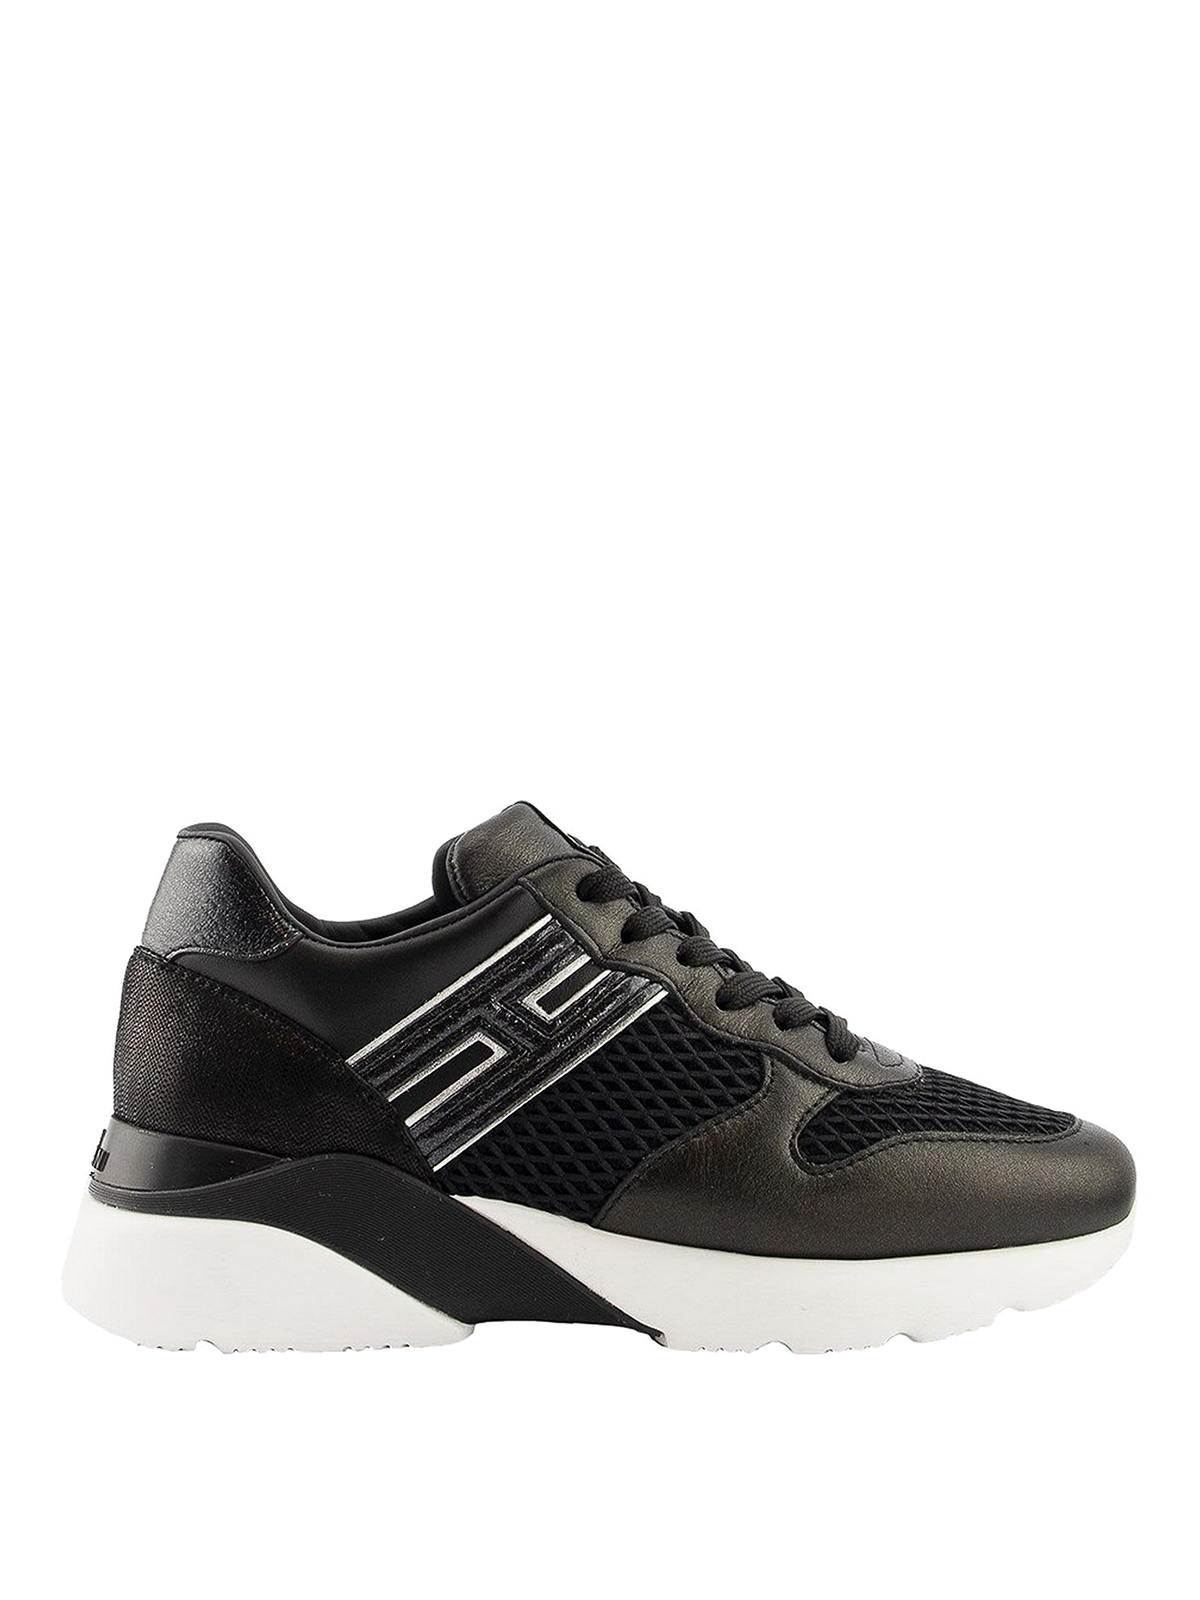 Hogan ACTIVE ONE LEATHER AND MESH SNEAKERS